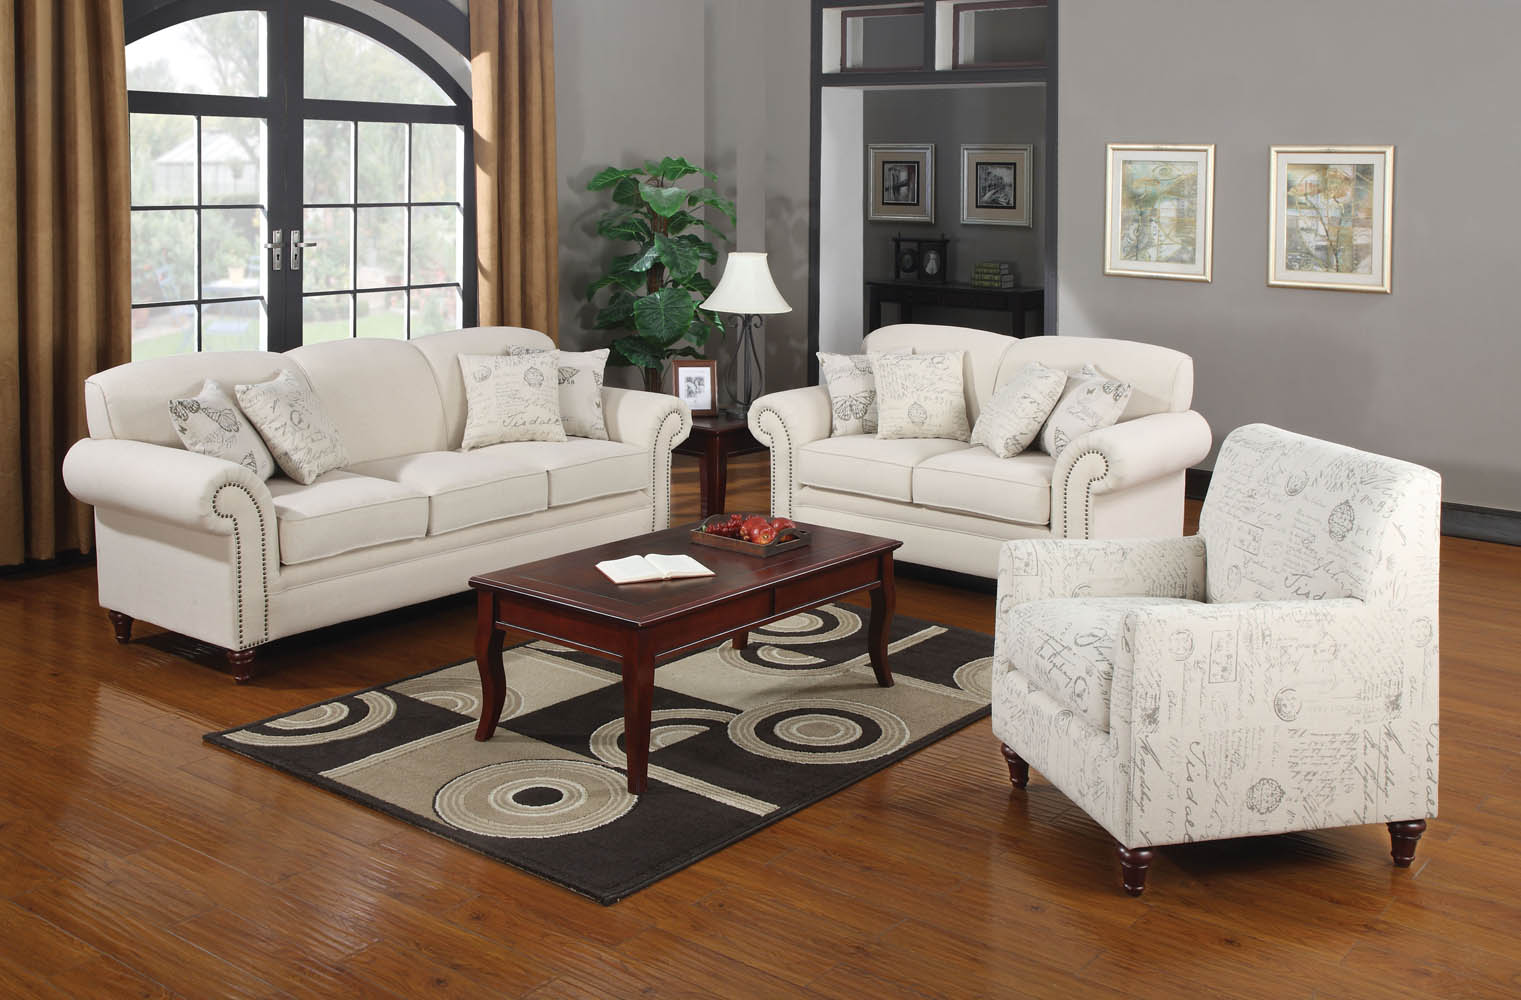 3 piece oatmeal linen fabric sofa set for Family room sofa sets